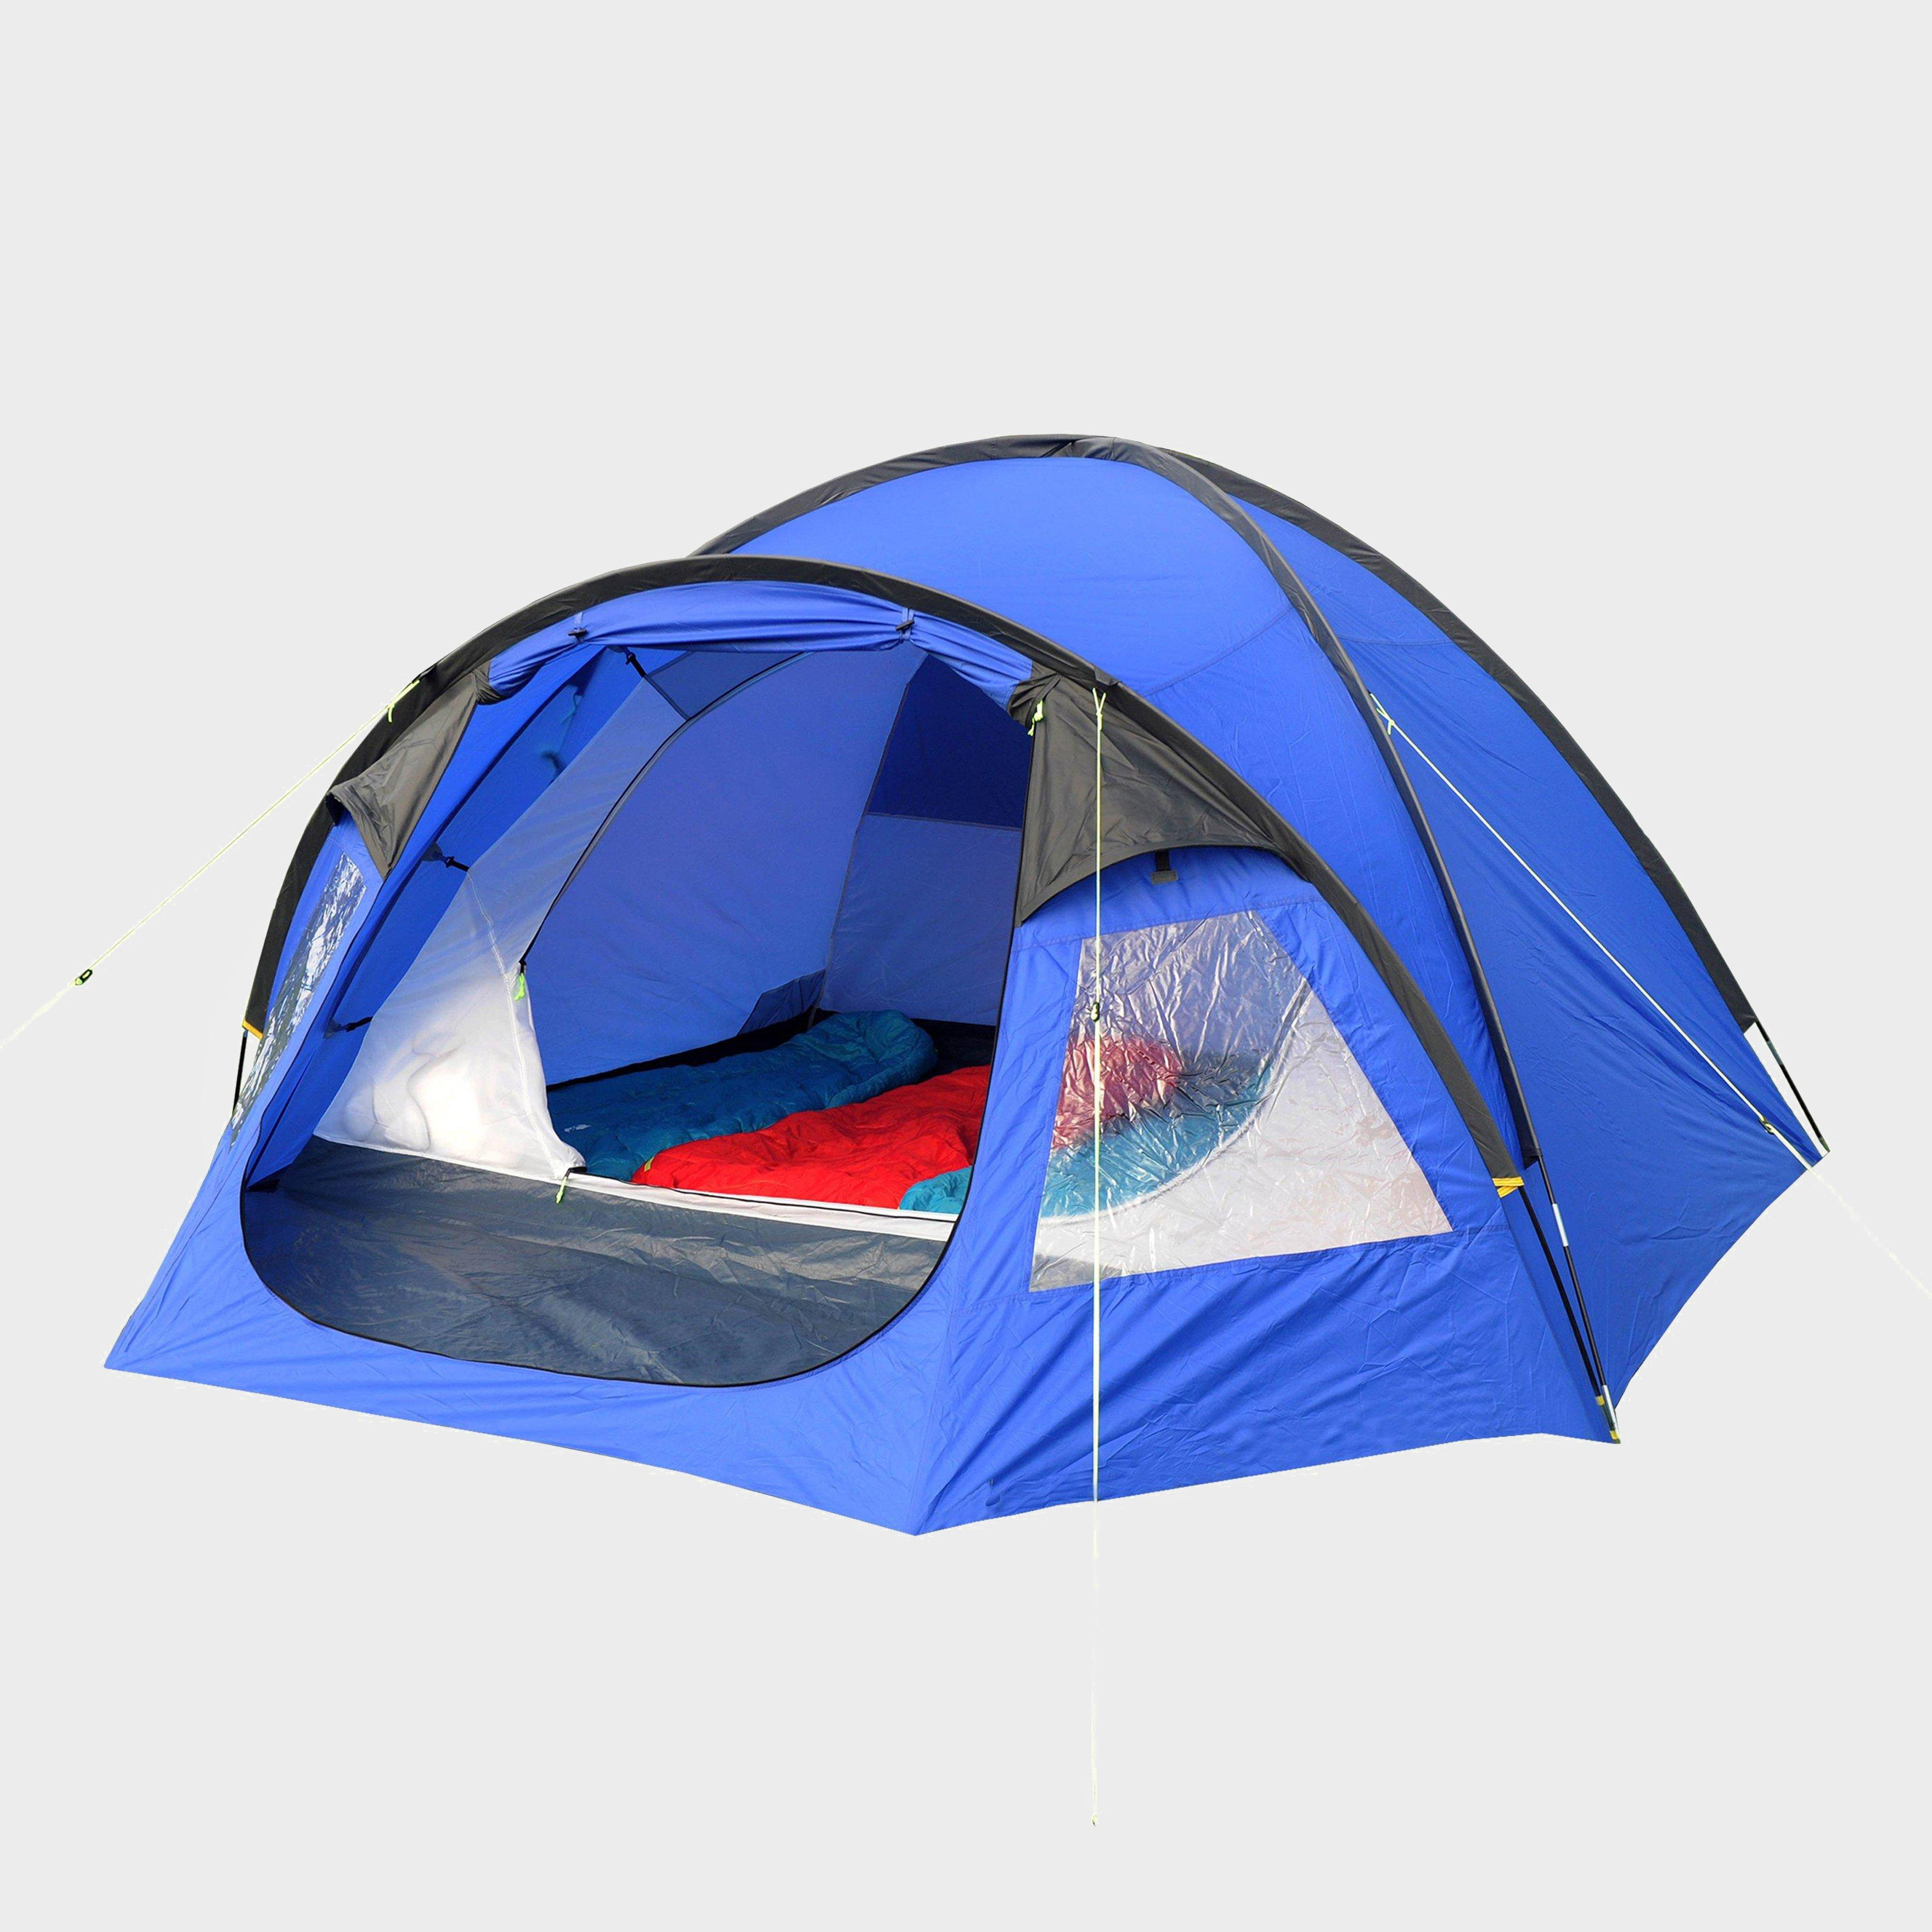 Eurohike Tay Deluxe Tent Prices And Reviews Outr Co Uk